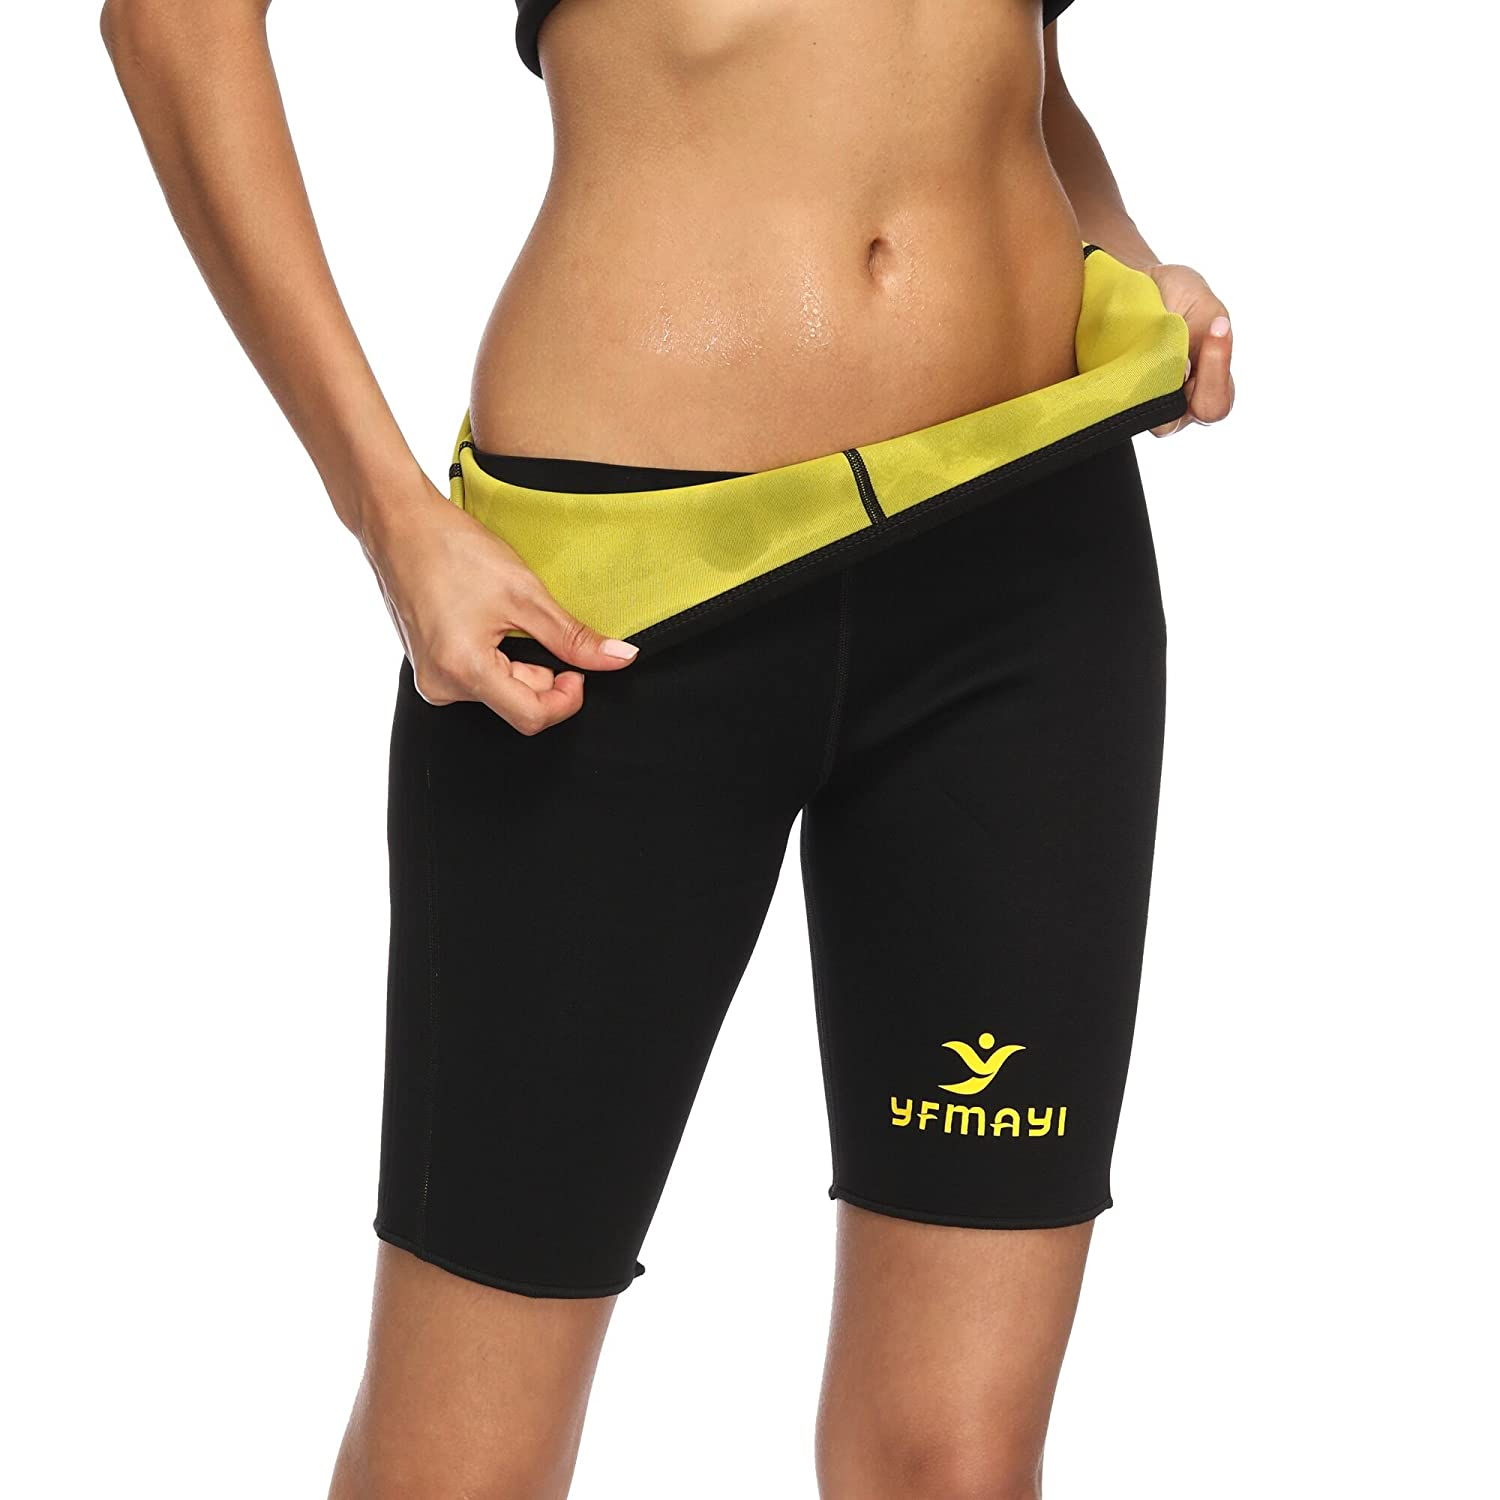 cccd64d10828f YFMAYI Material Hot Sweat Sauna Neoprene Pants Body Shapers Slimming Gym  Leggings Body Shapers Anti-Cellulite Shorts Thermo Fitness Weight Loss Yoga  Sports ...